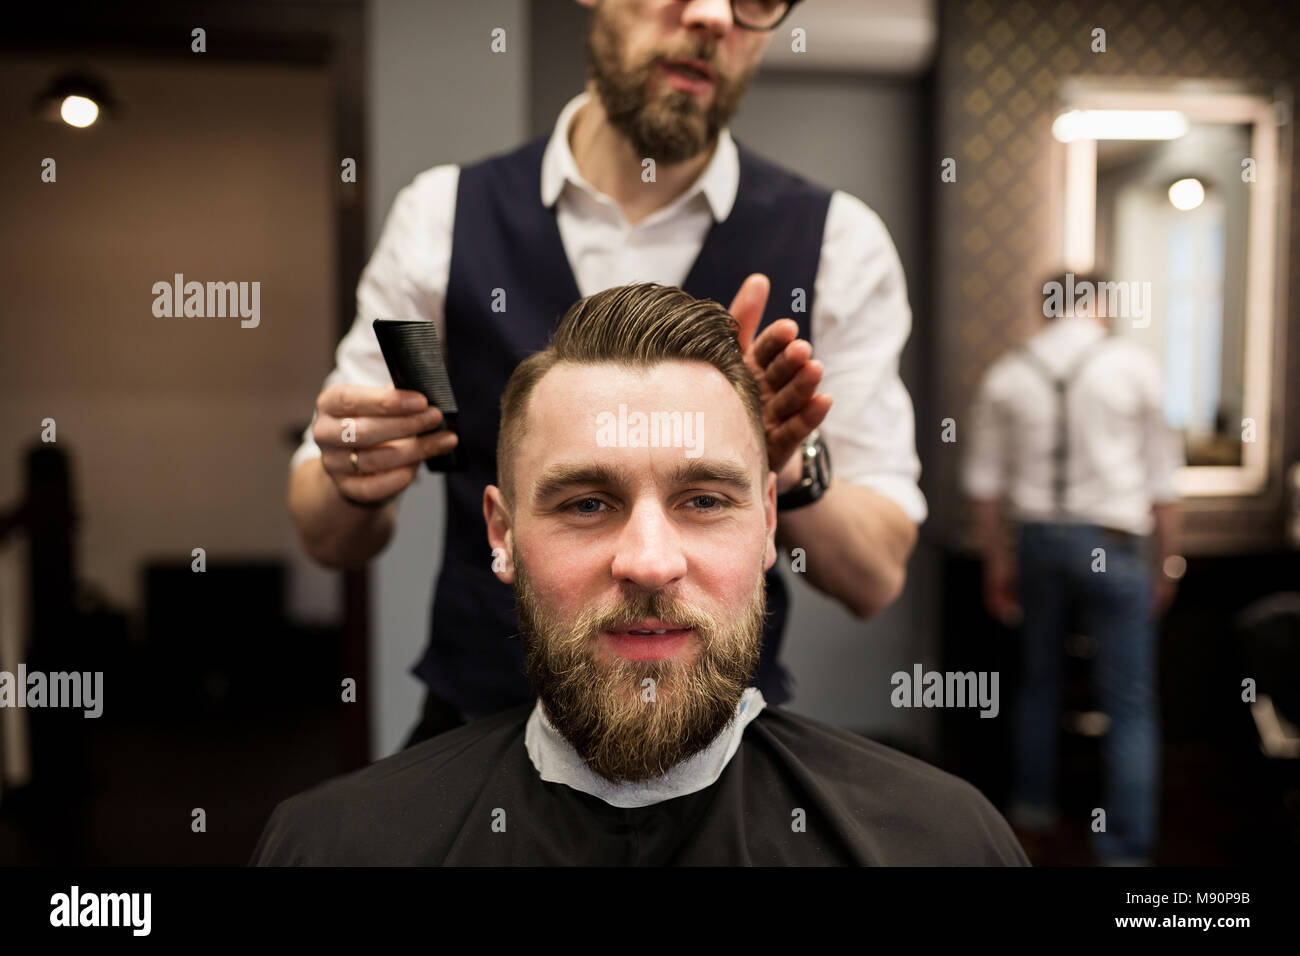 Front portrait of glad young man having hair cut at barber salon - Stock Image